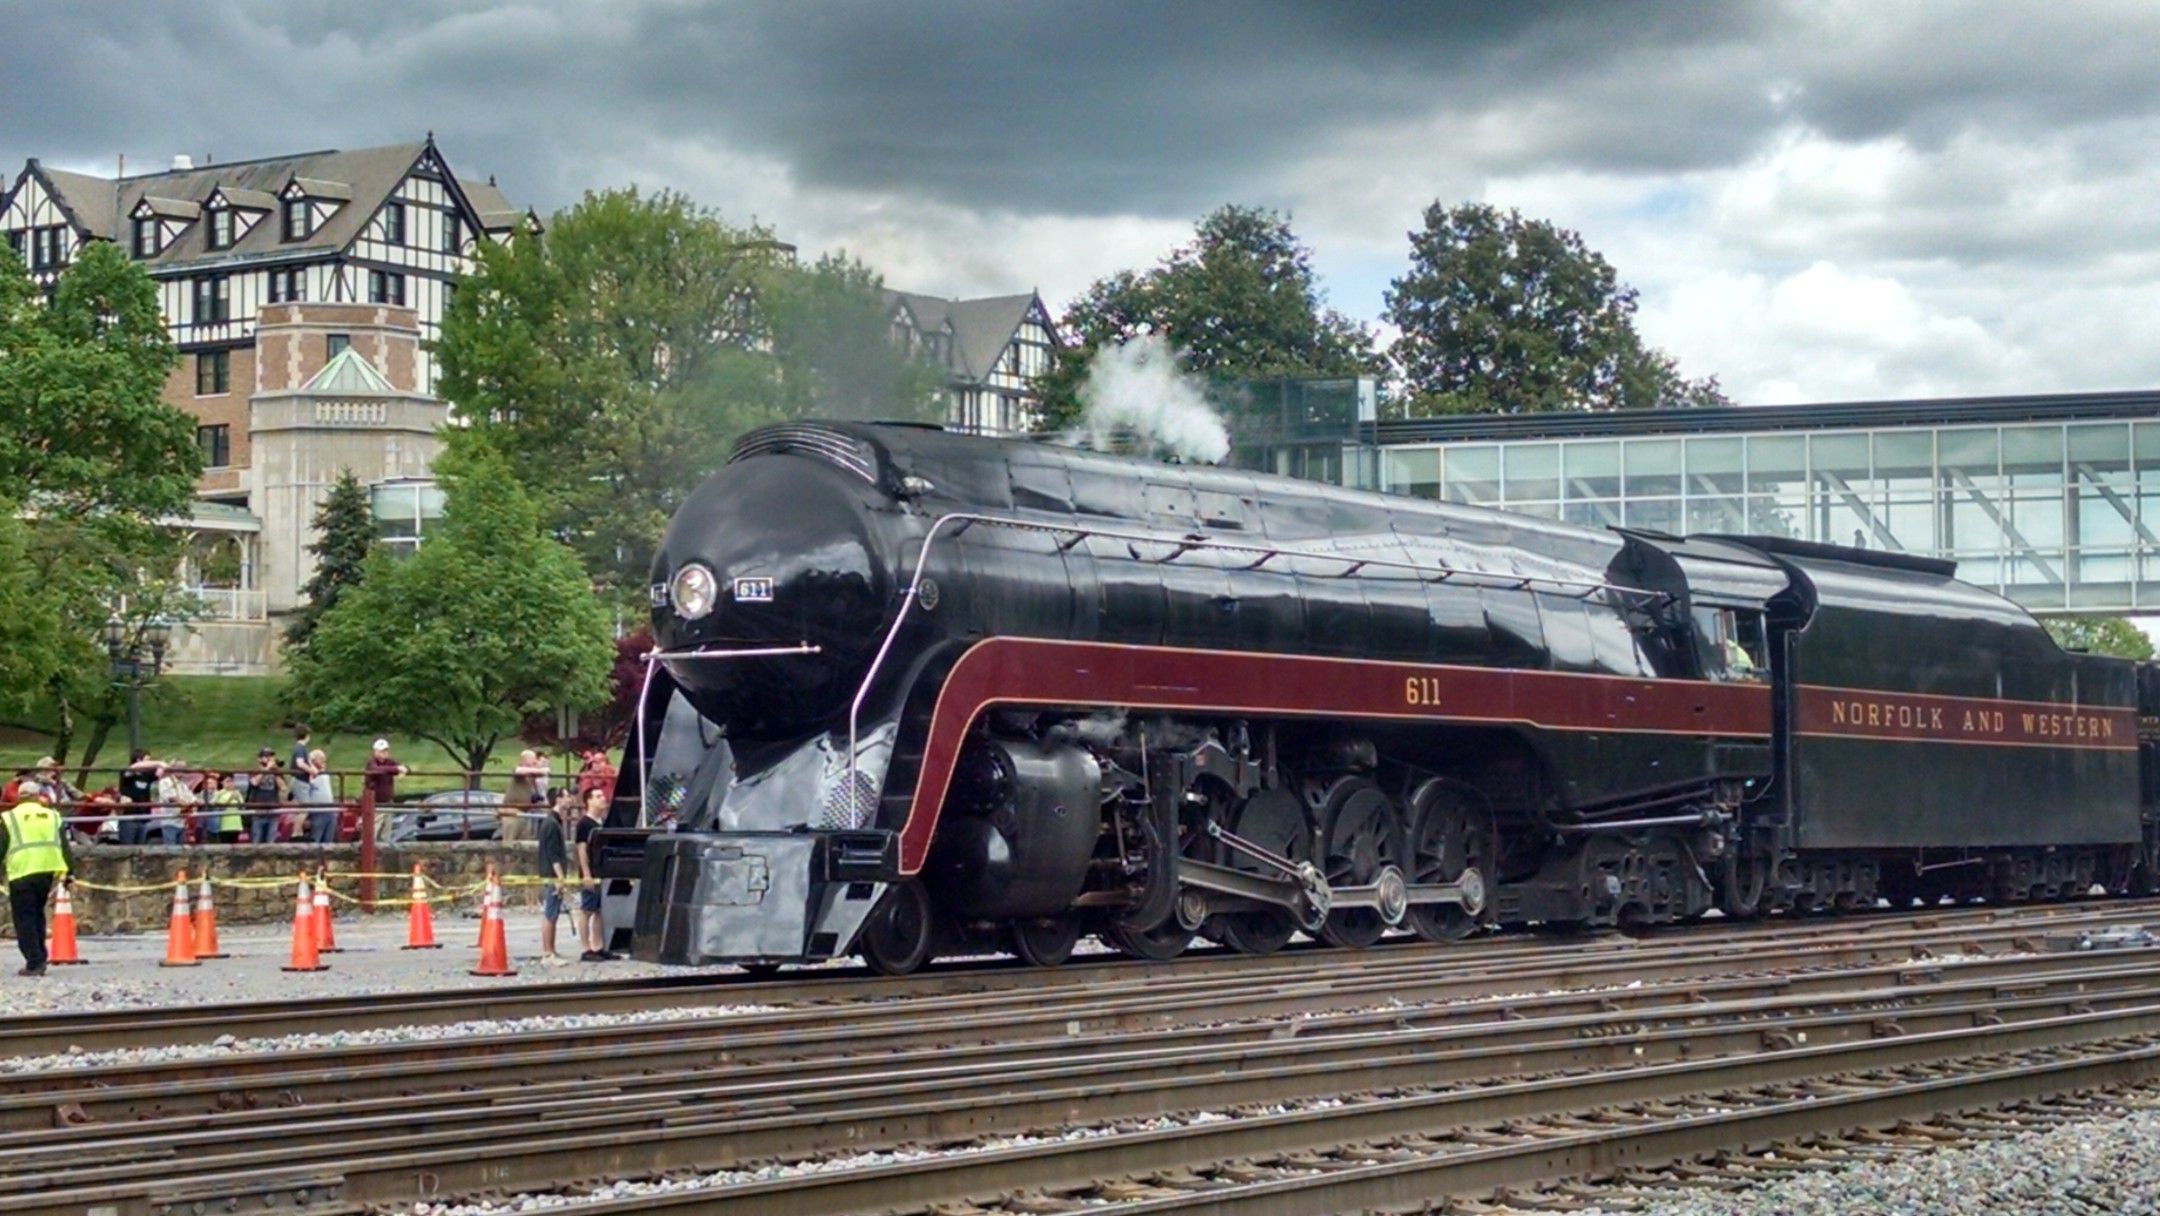 Pin by james winston on steam train